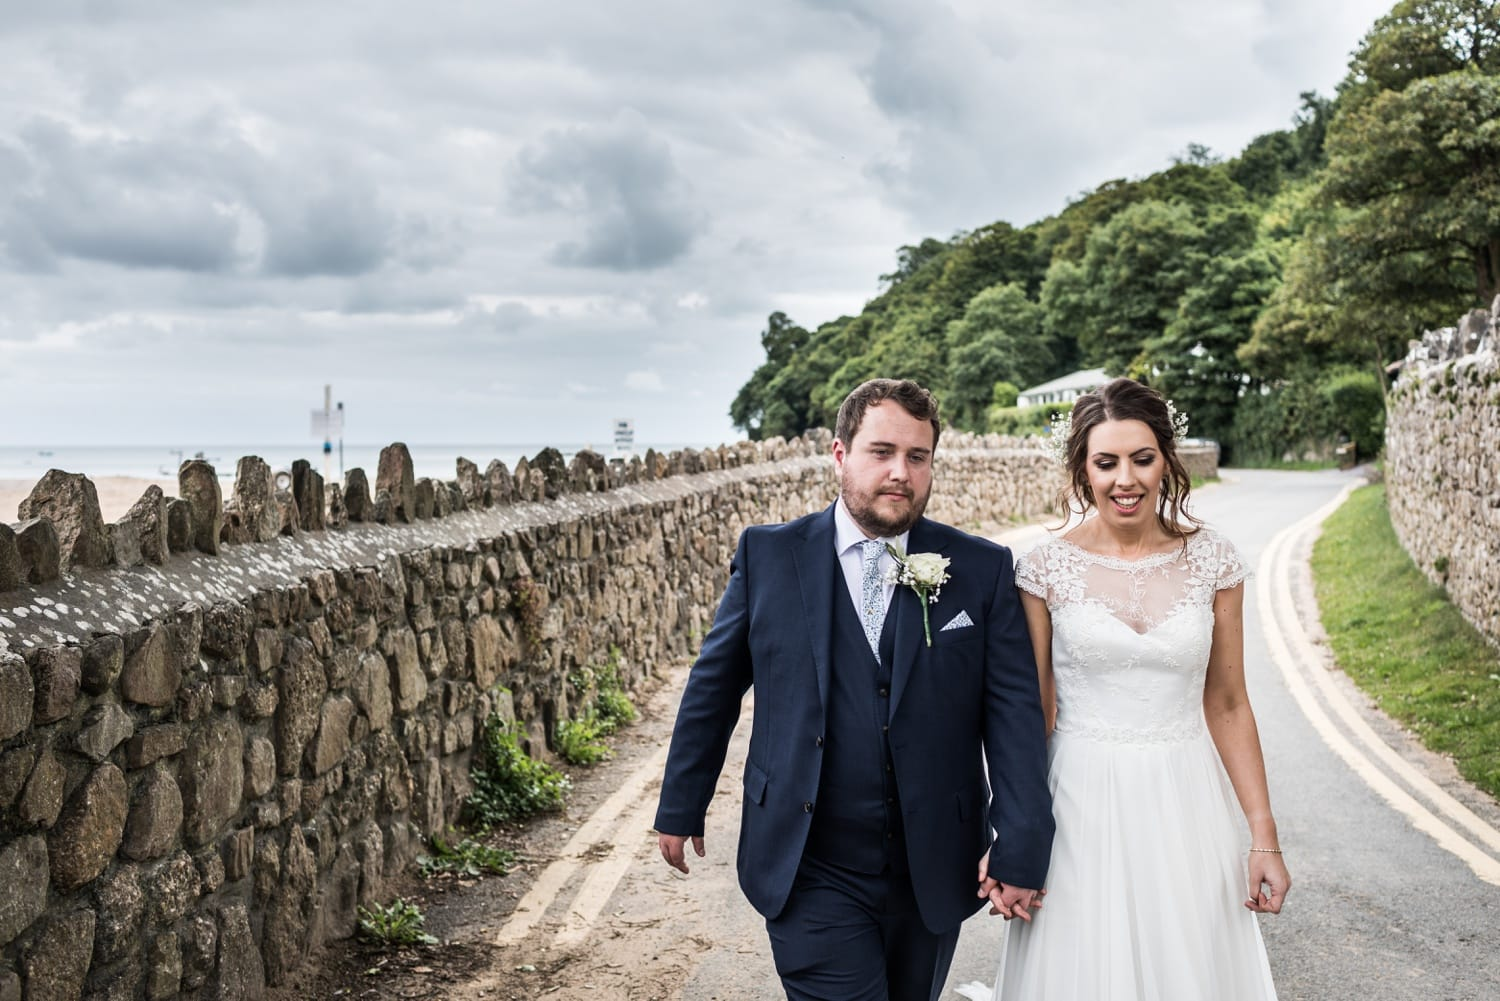 Bride and groom wedding photograpohs on beach at Oxwich Bay in Gower